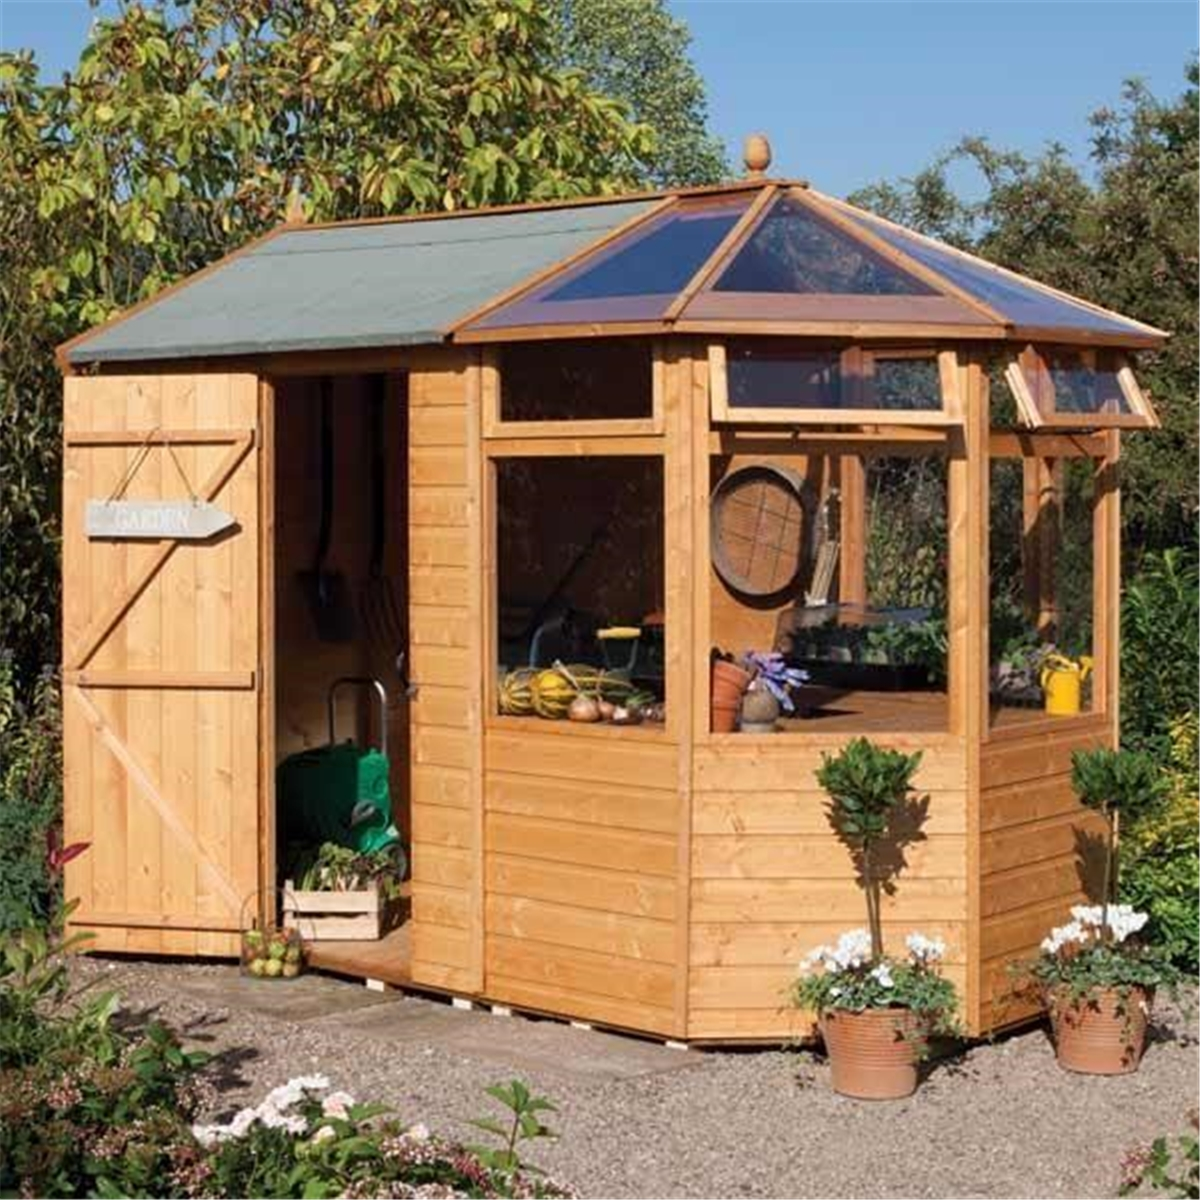 10 x 6 Deluxe Potting Shed (Tongue and Groove Floor)